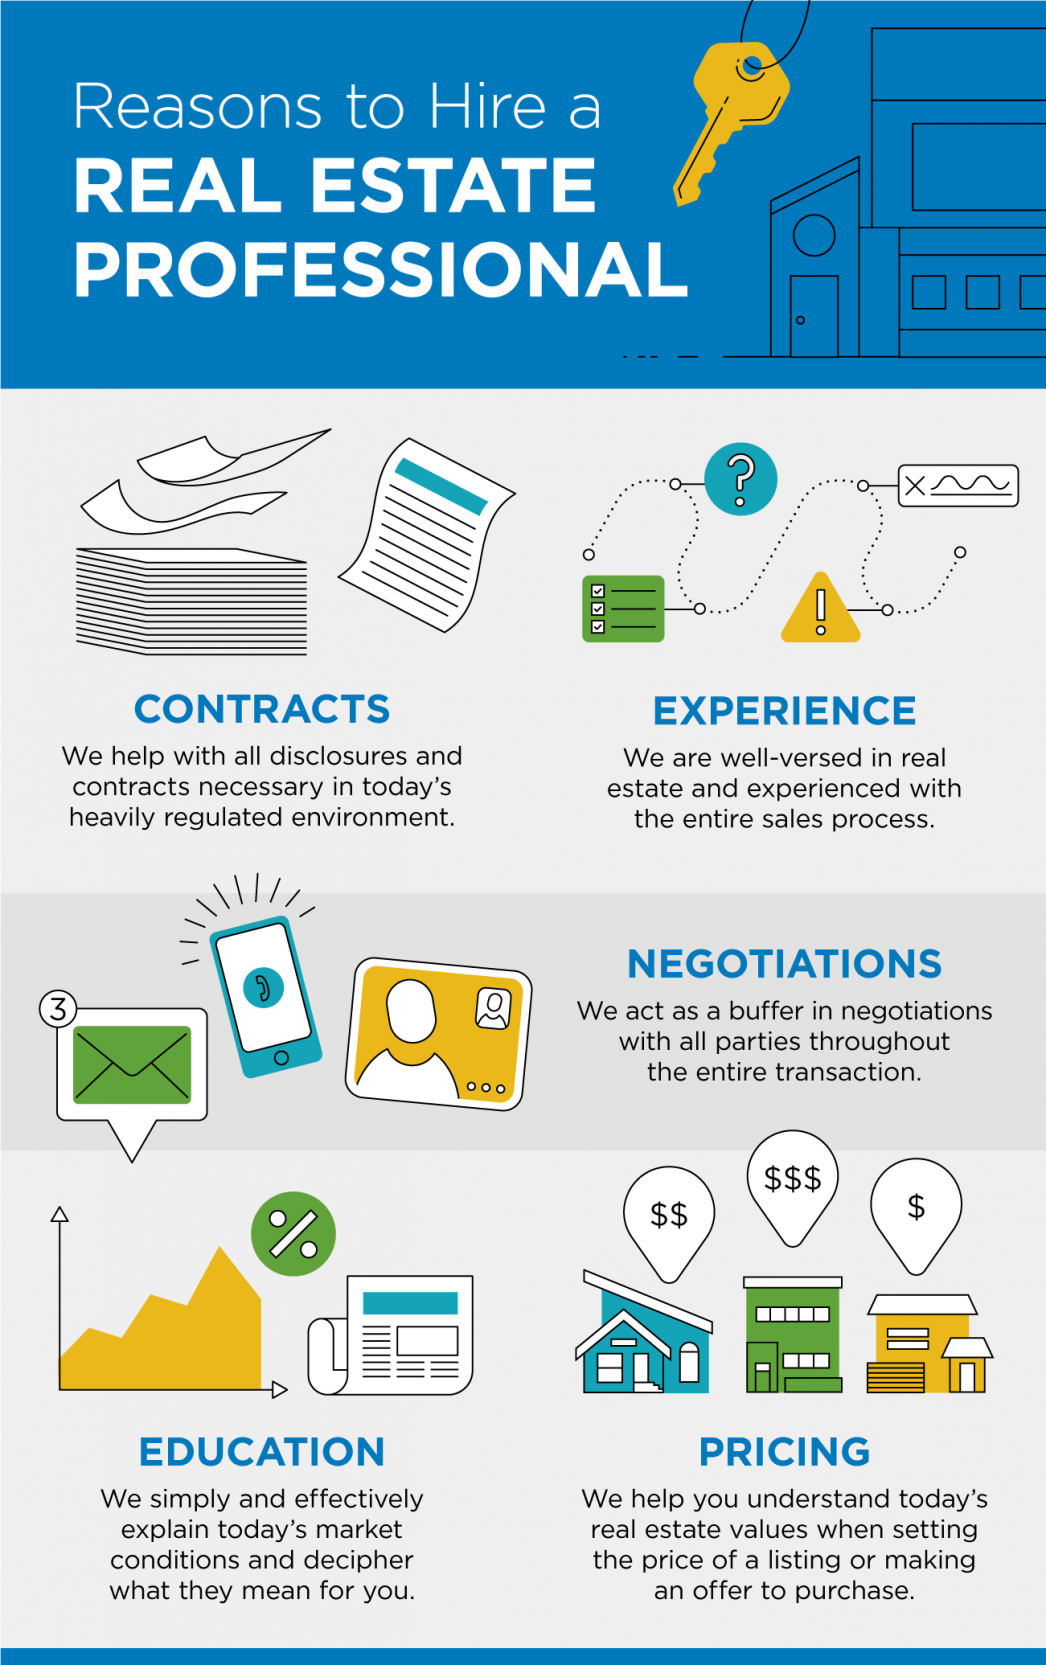 Reasons to Hire a Real Estate Professional [INFOGRAPHIC] | MyKCM